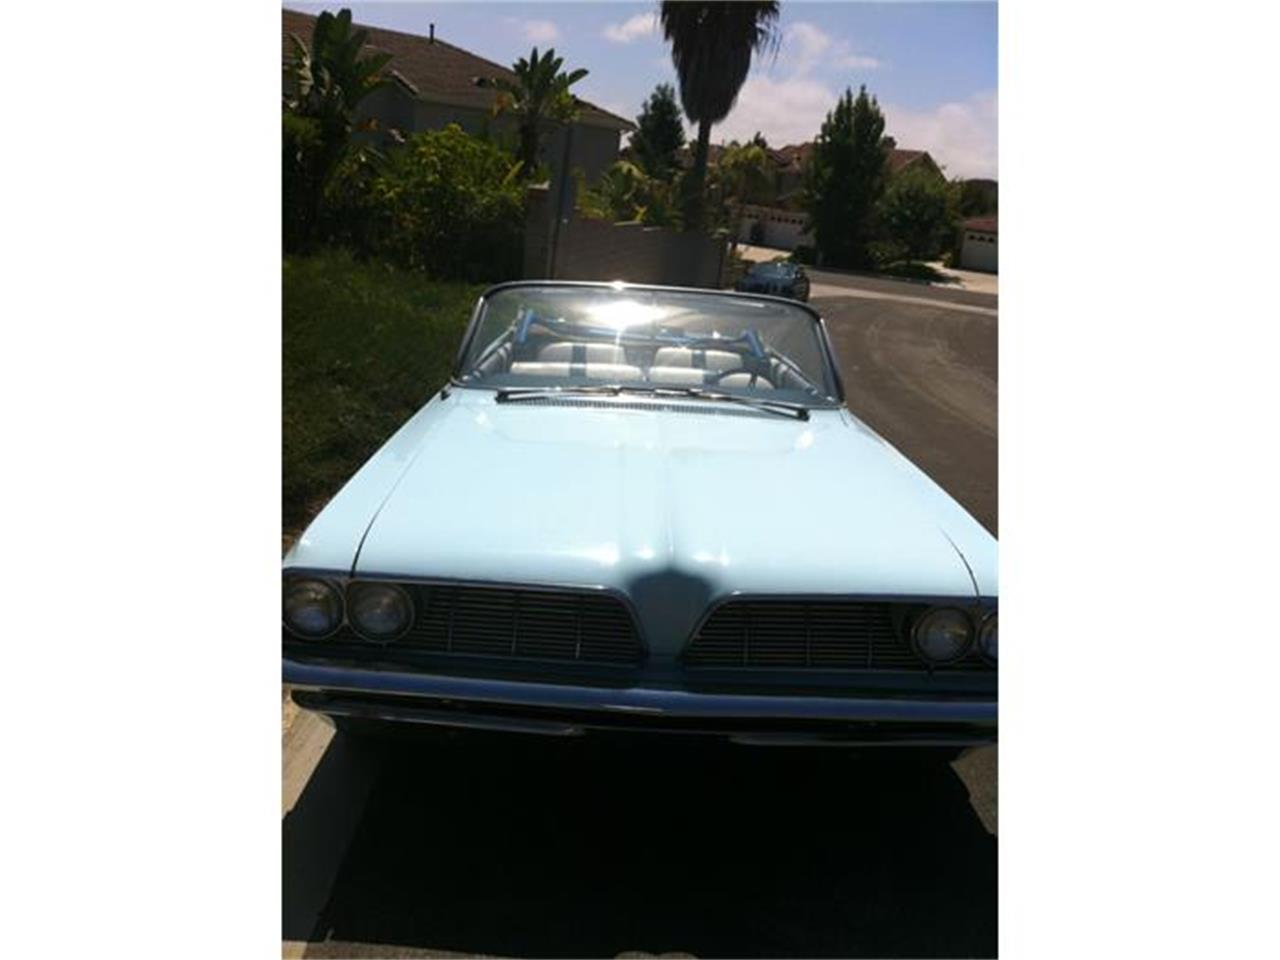 Large Picture of 1961 Pontiac Bonneville - $18,995.00 Offered by a Private Seller - ASQZ